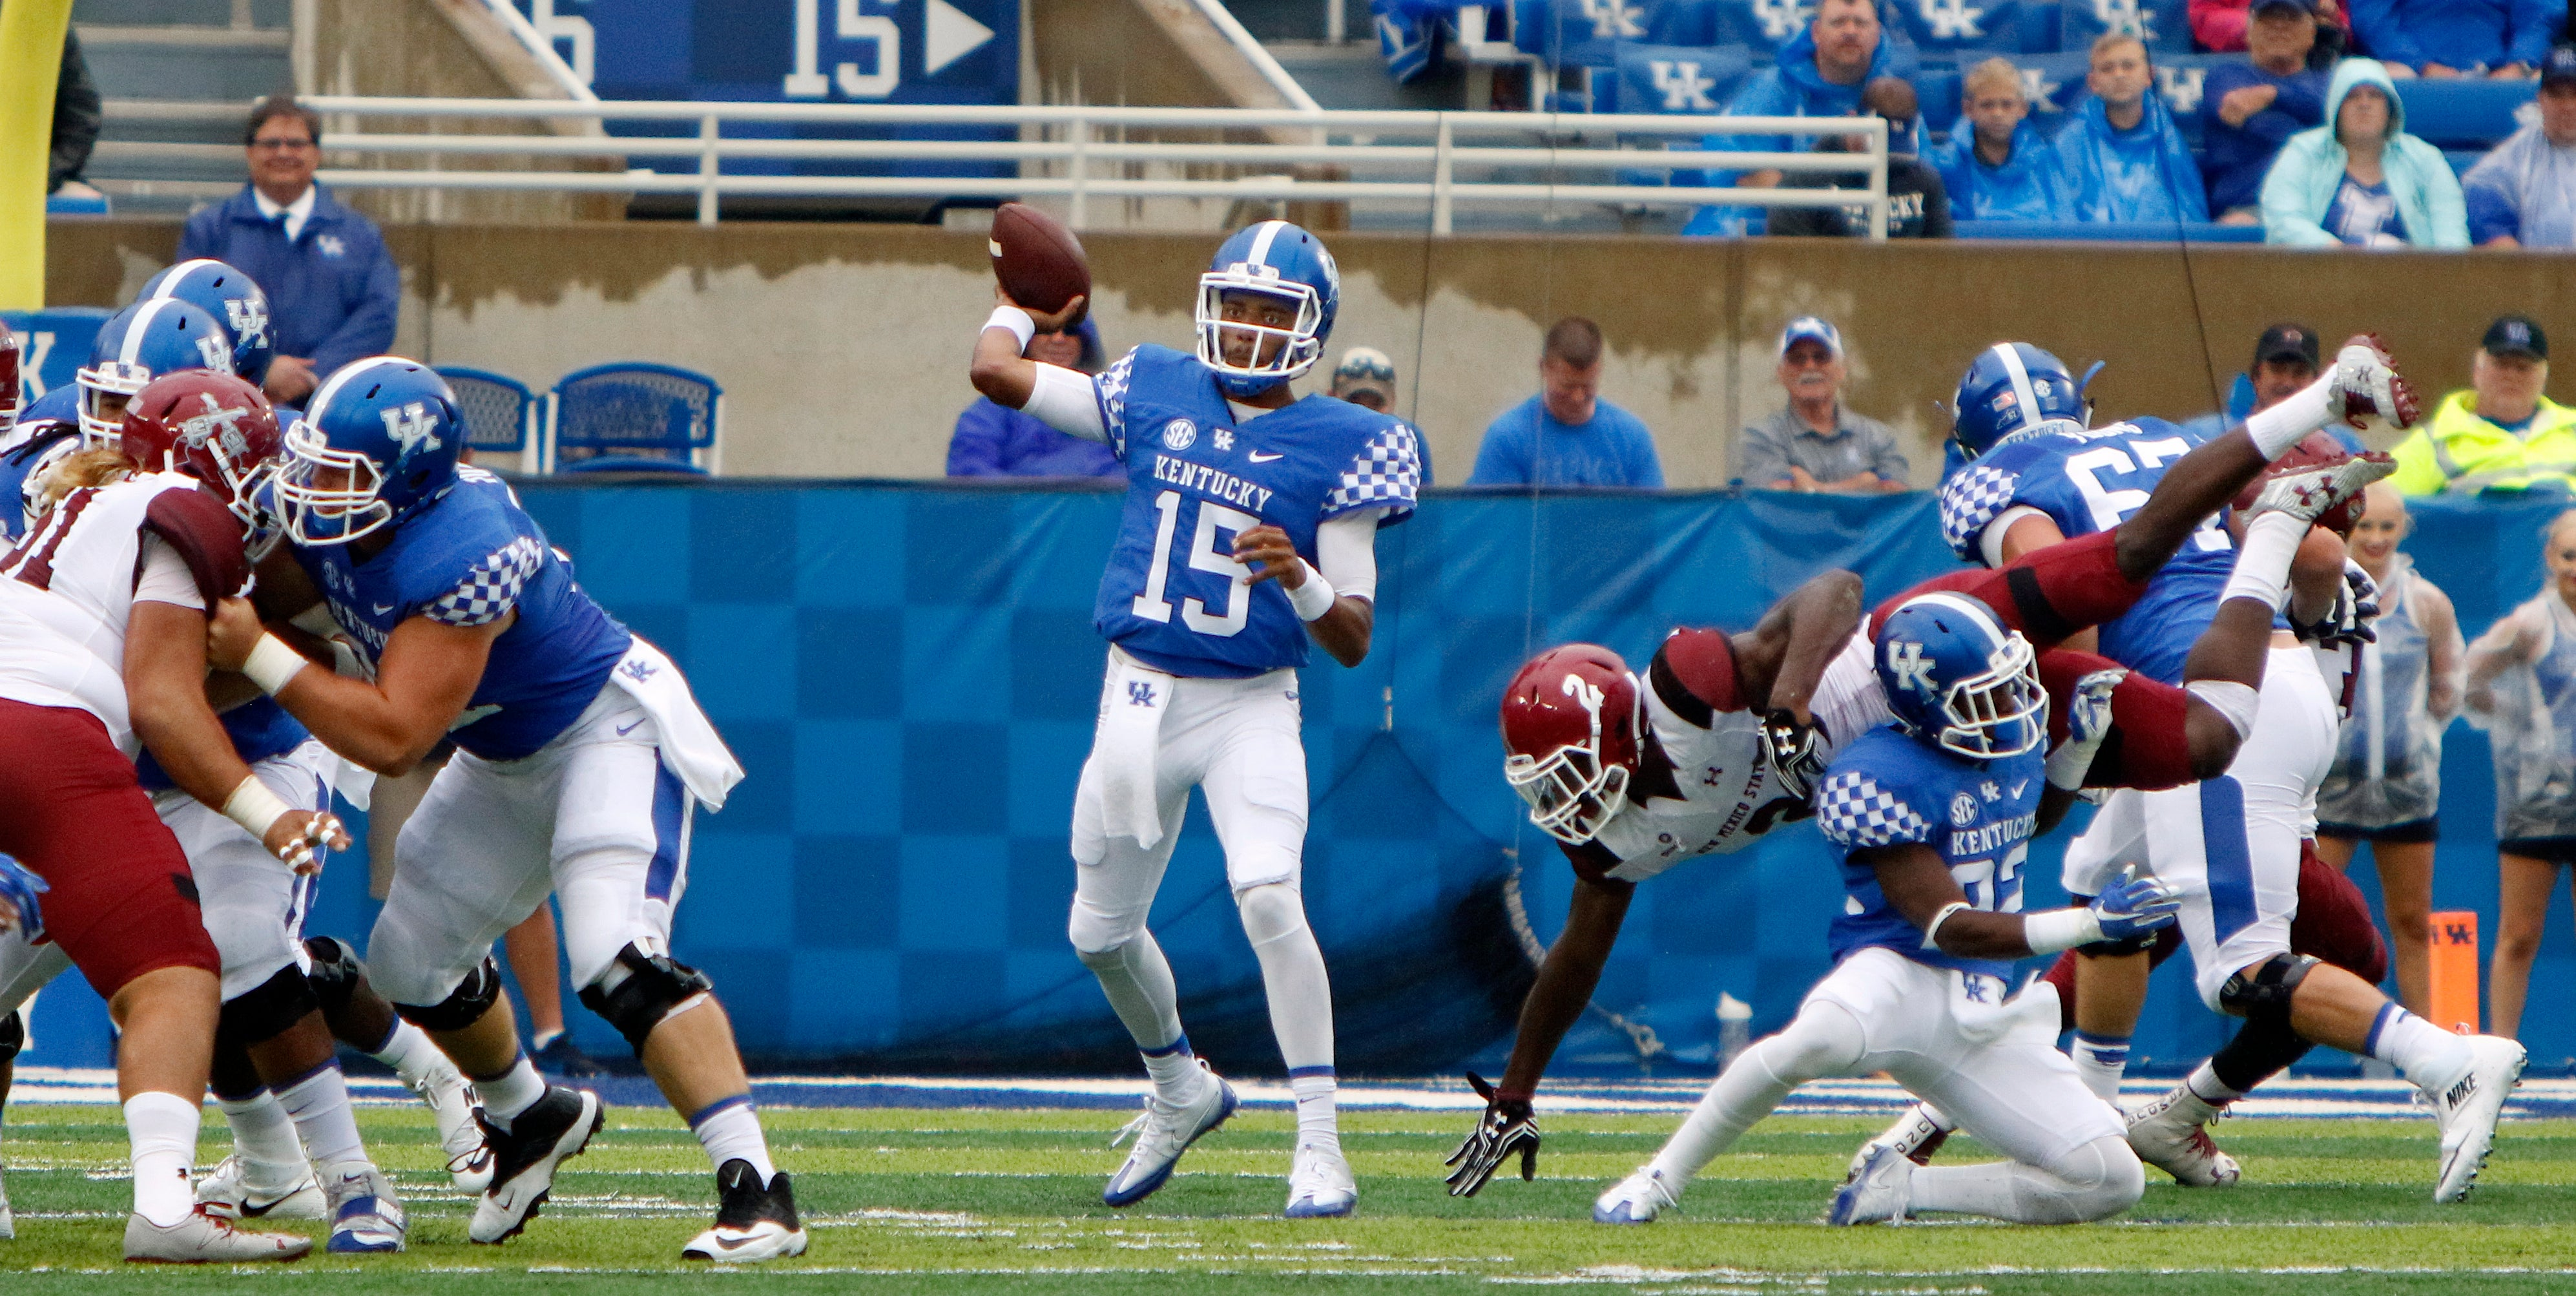 RECAP: Kentucky 62, New Mexico State 42